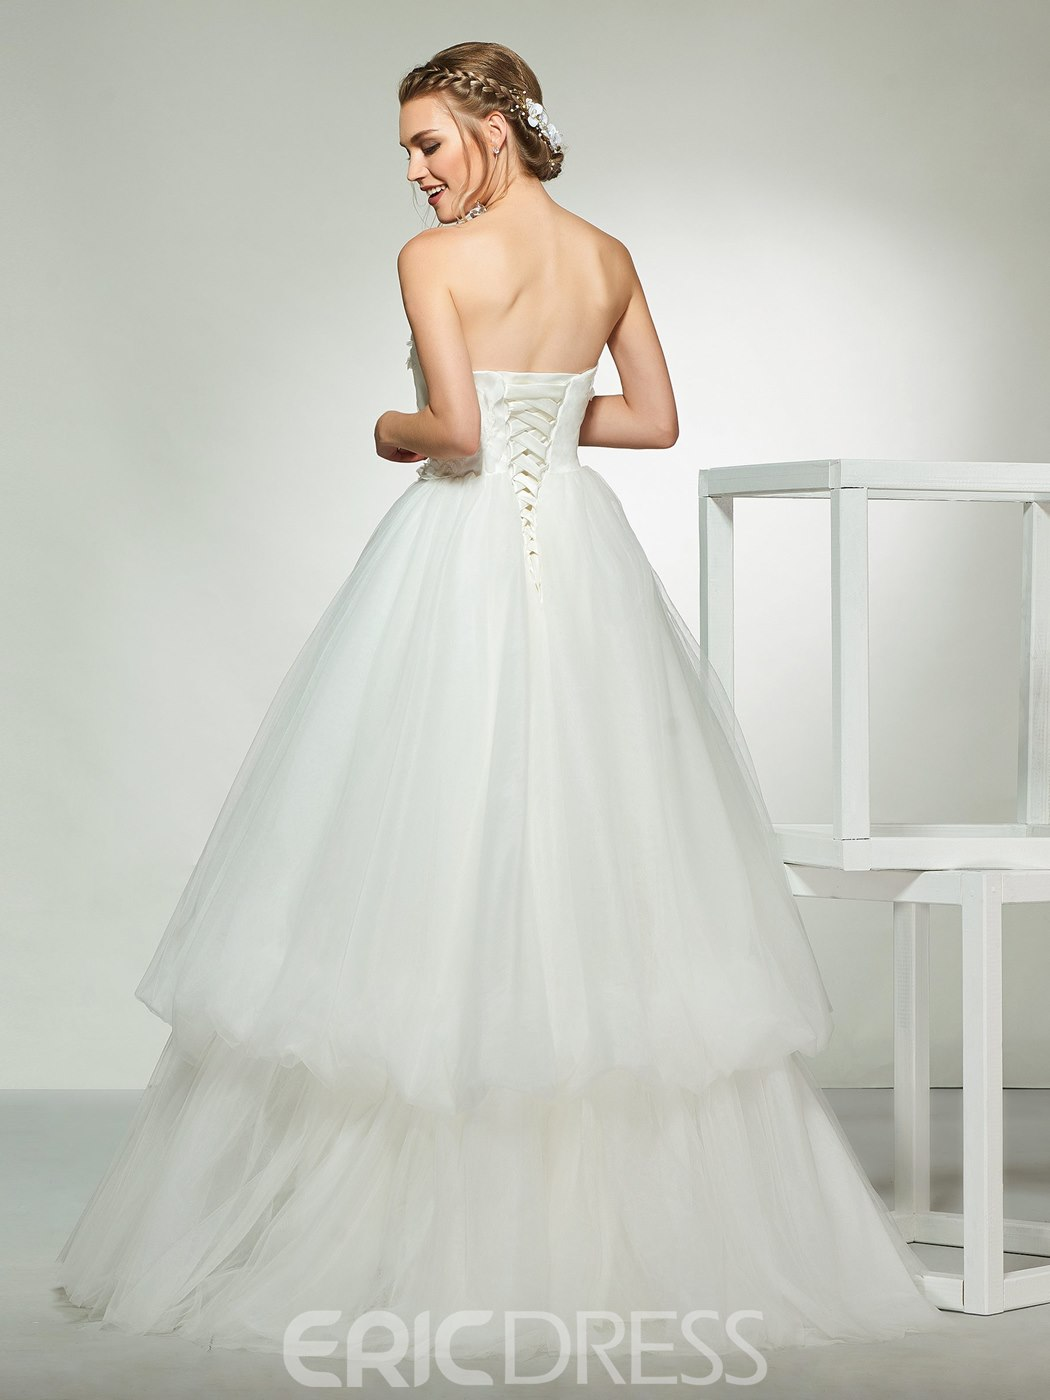 Ericdress Appliques Strapless Layers Wedding Dress